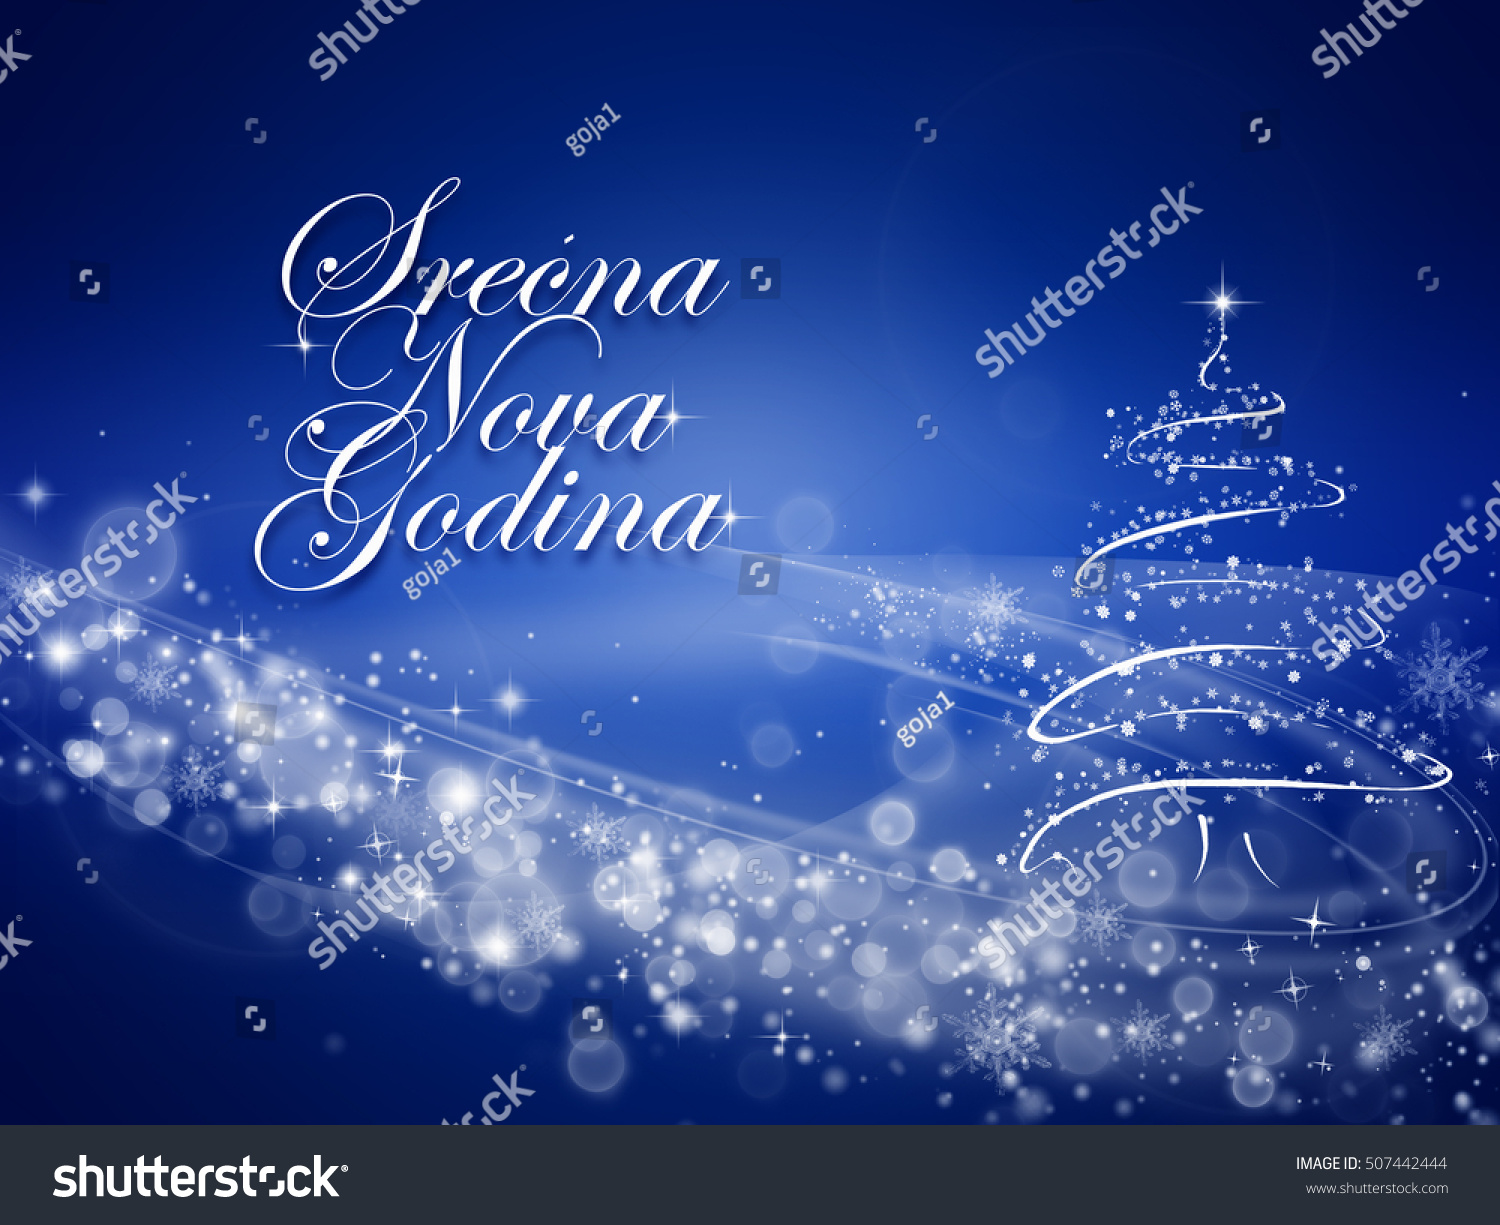 Happy new year poster design serbian stock illustration 507442444 happy new year poster design to serbian language m4hsunfo